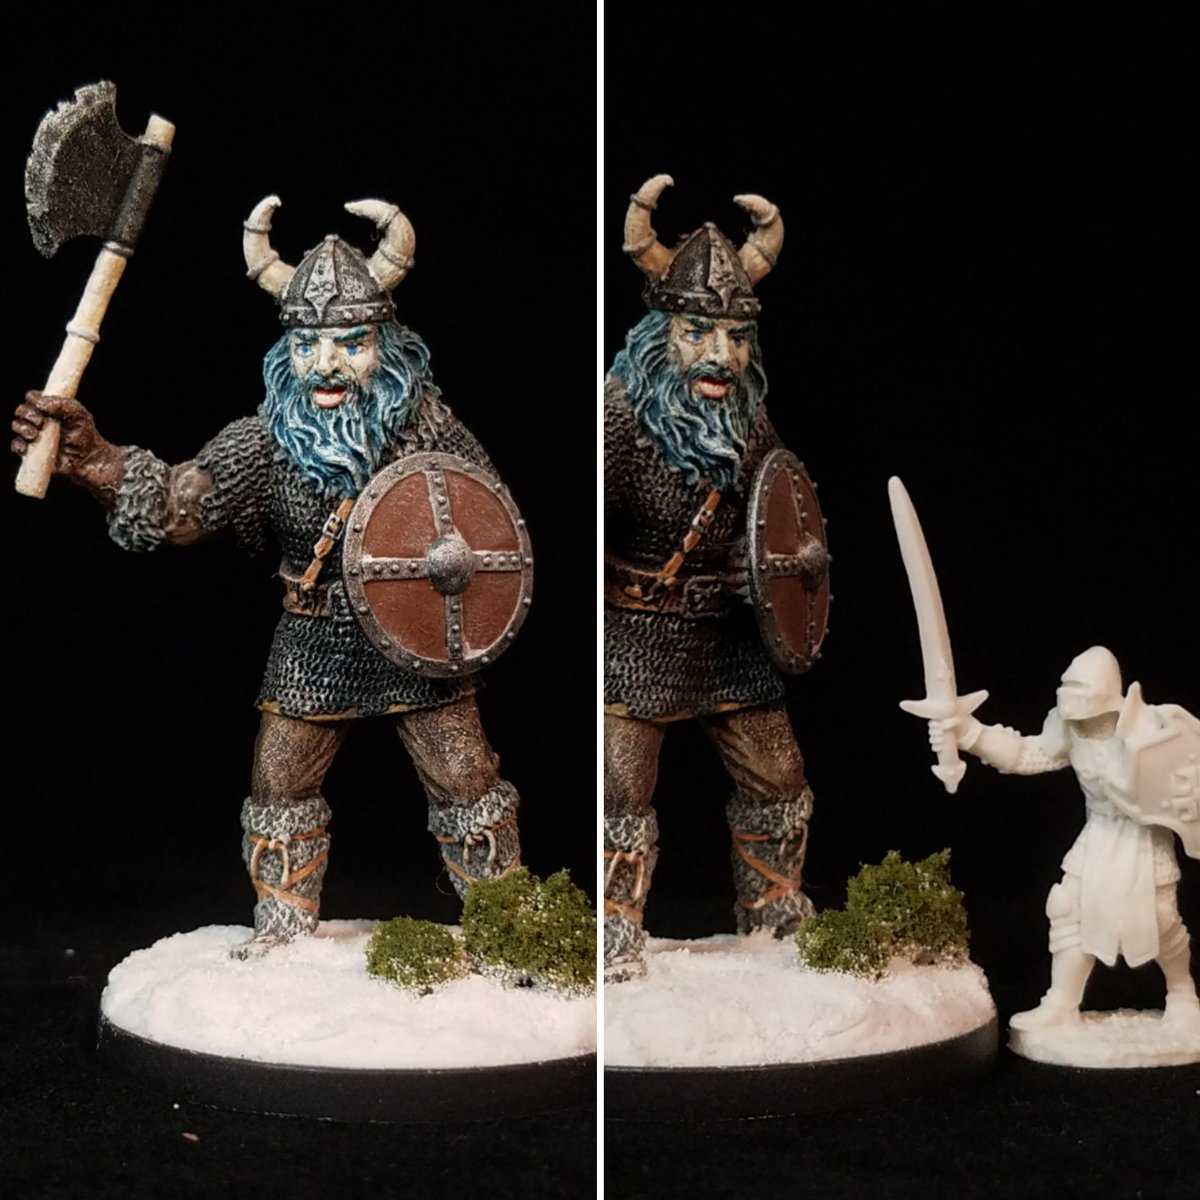 Frost Giant (Ral Partha 11-436) . #tabletop #fantasy #rpg #miniatures #ttrpg #minis #RalPartha #iwm #giant #OldSchool #dungeonsanddragons #pathfinderrpg #MyCharacterMinis #paintingminis https://t.co/zF7a2YYqRT